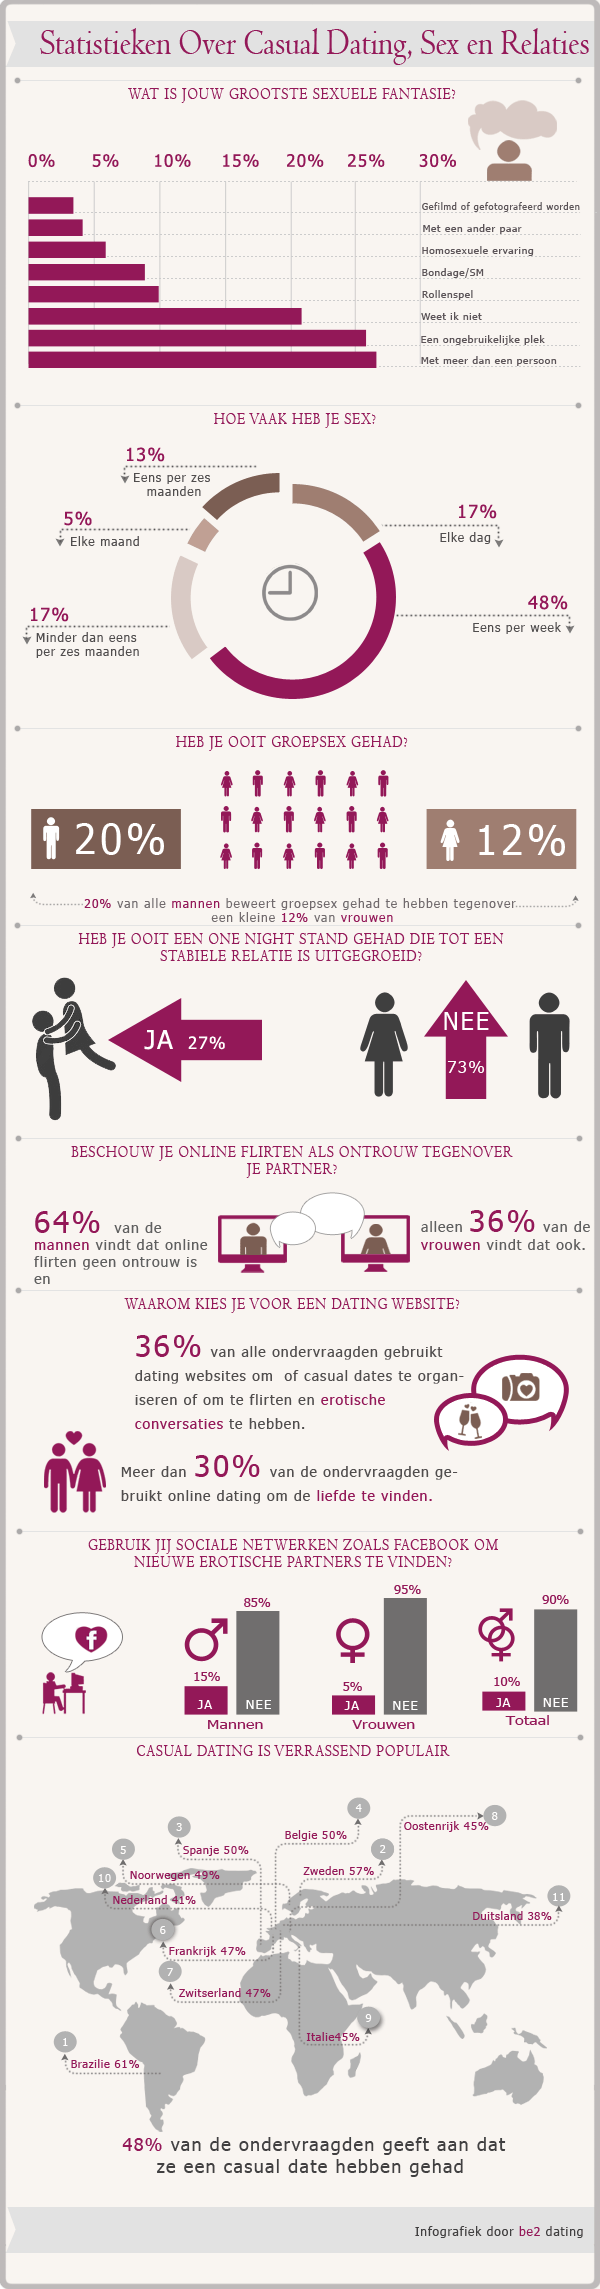 Statistics on Casual Dating, Sex and Relationships